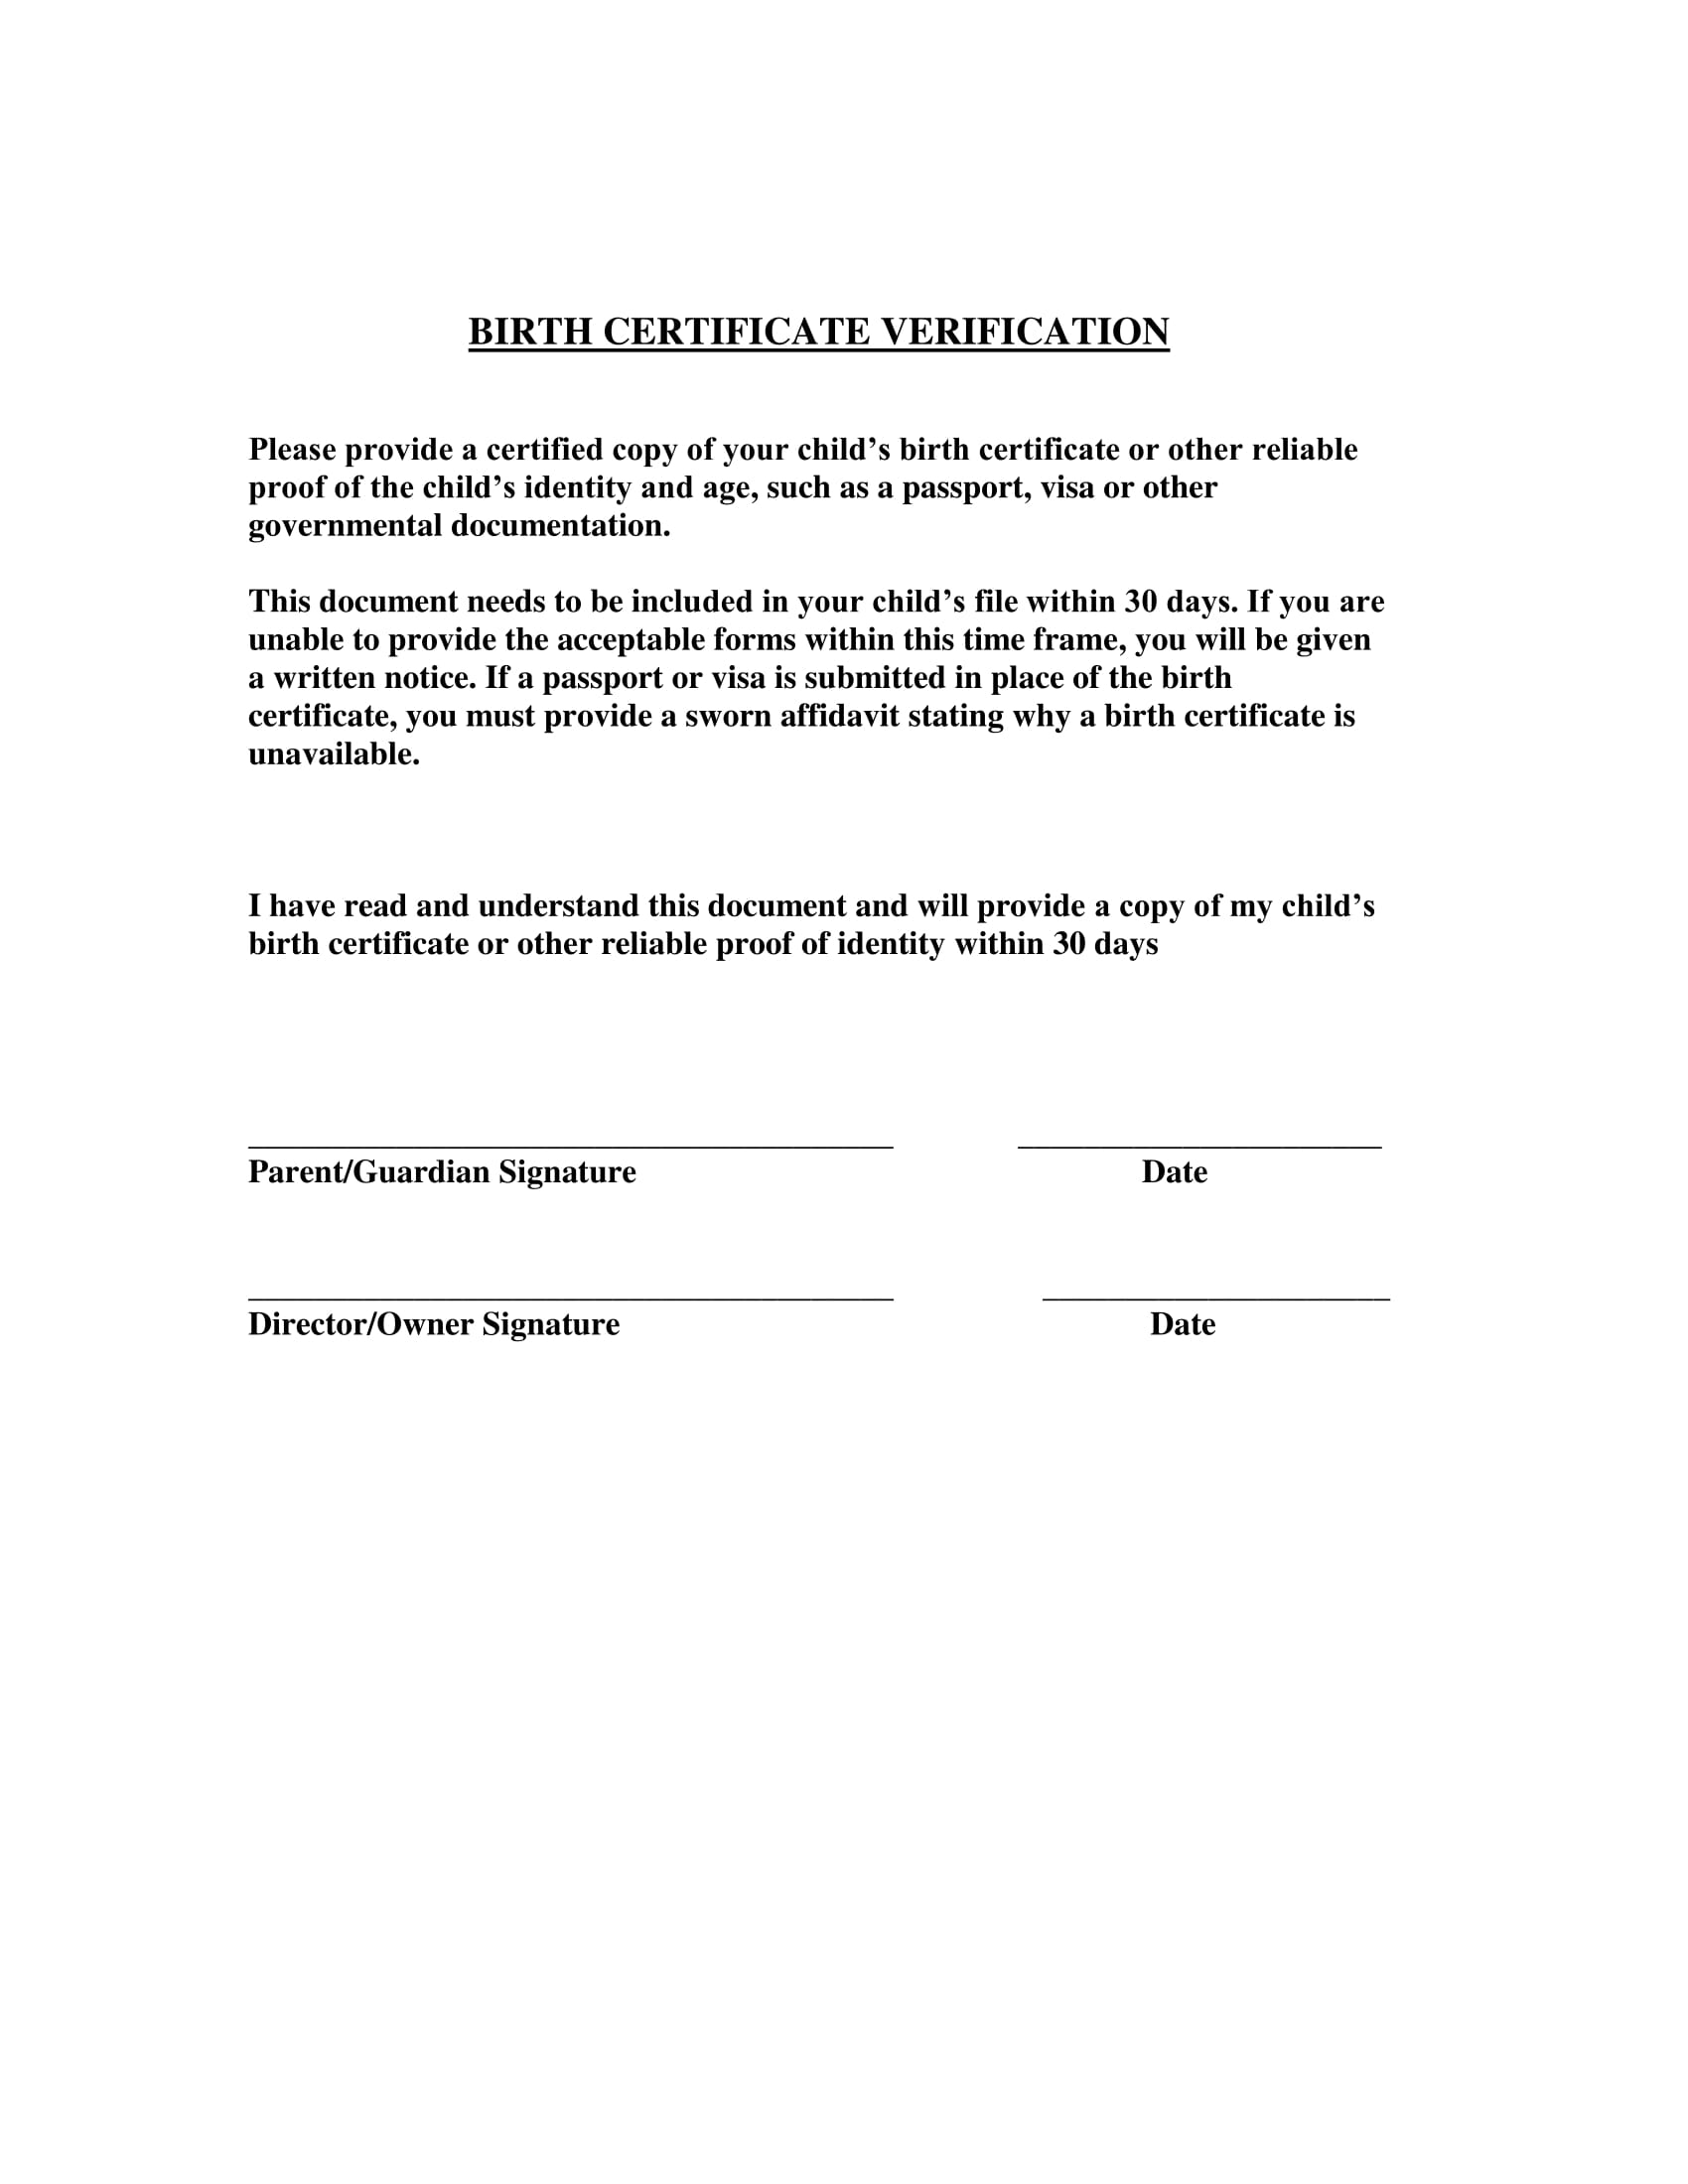 Birth Verification Form Definition Importance And Purpose